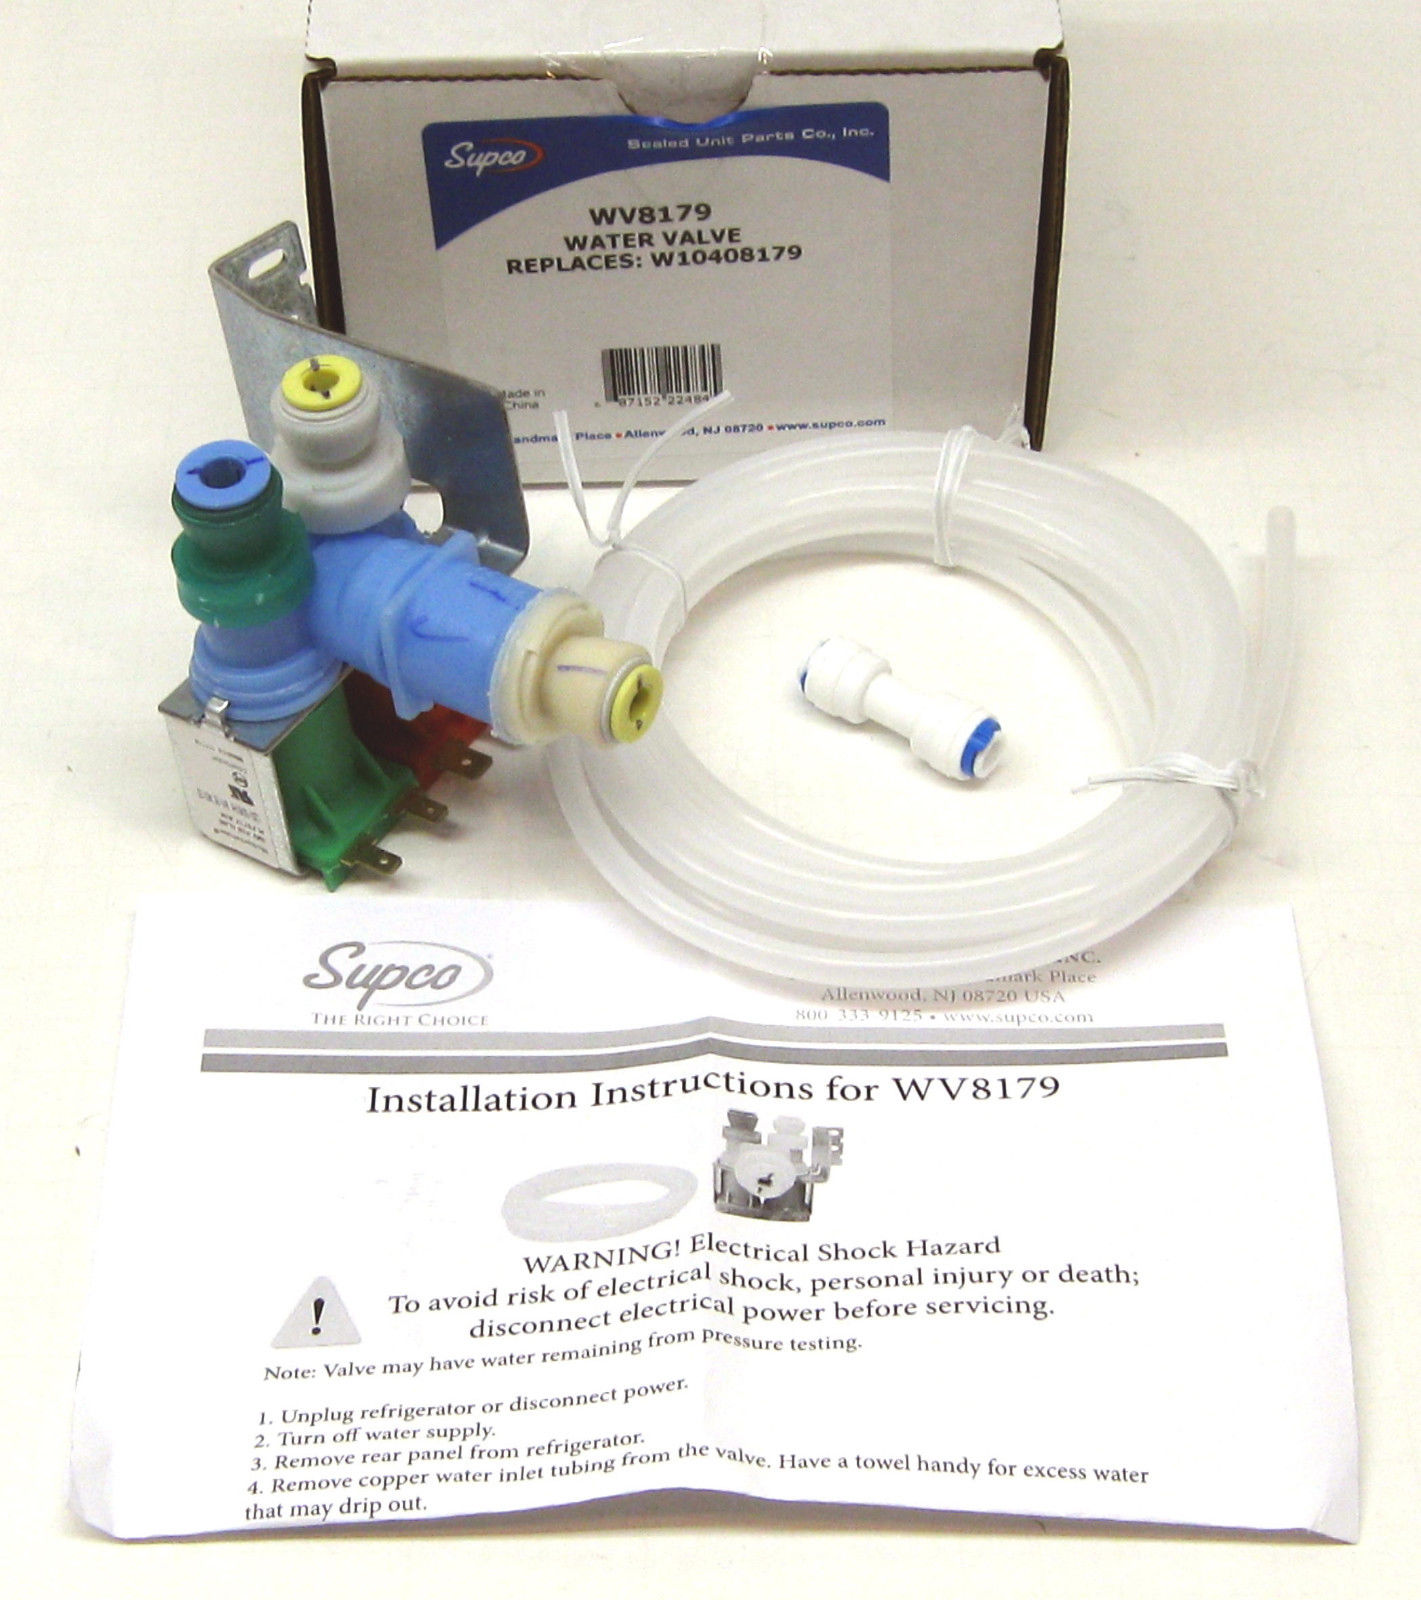 Wv8179 for w10408179 whirlpool kitchenaid refrigerator water valve supco ebay - Kitchenaid dishwasher fill valve ...